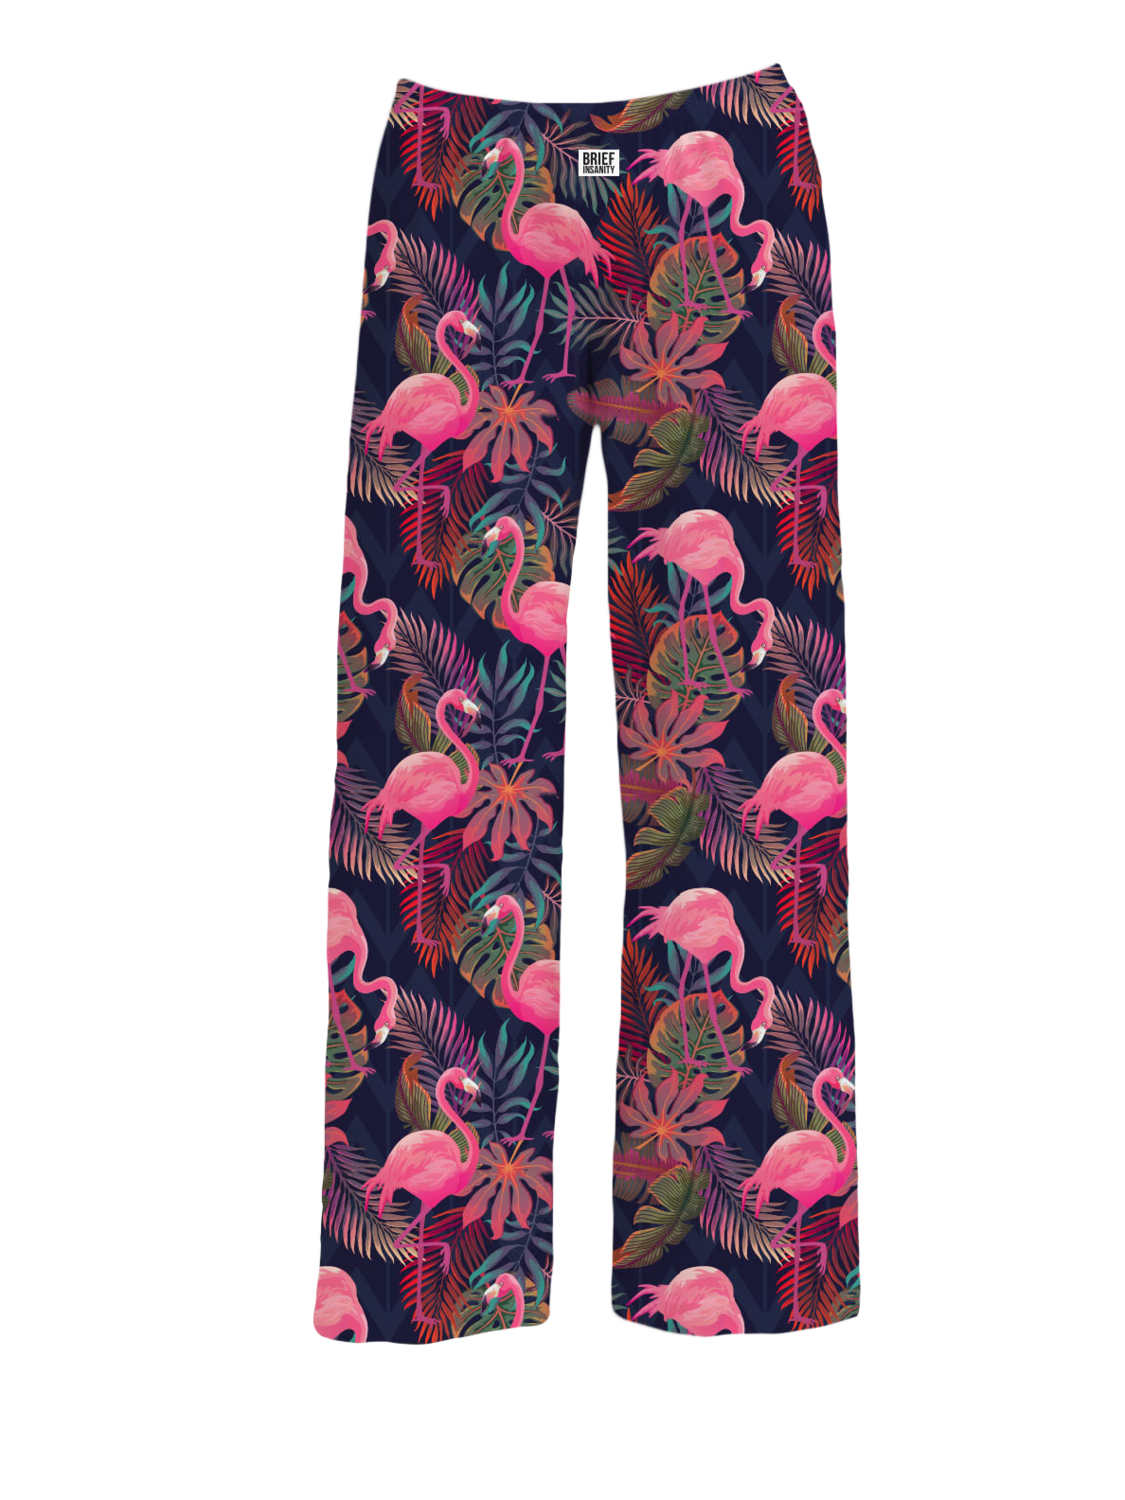 Brief Insanity Pajama Pants- Flamingo